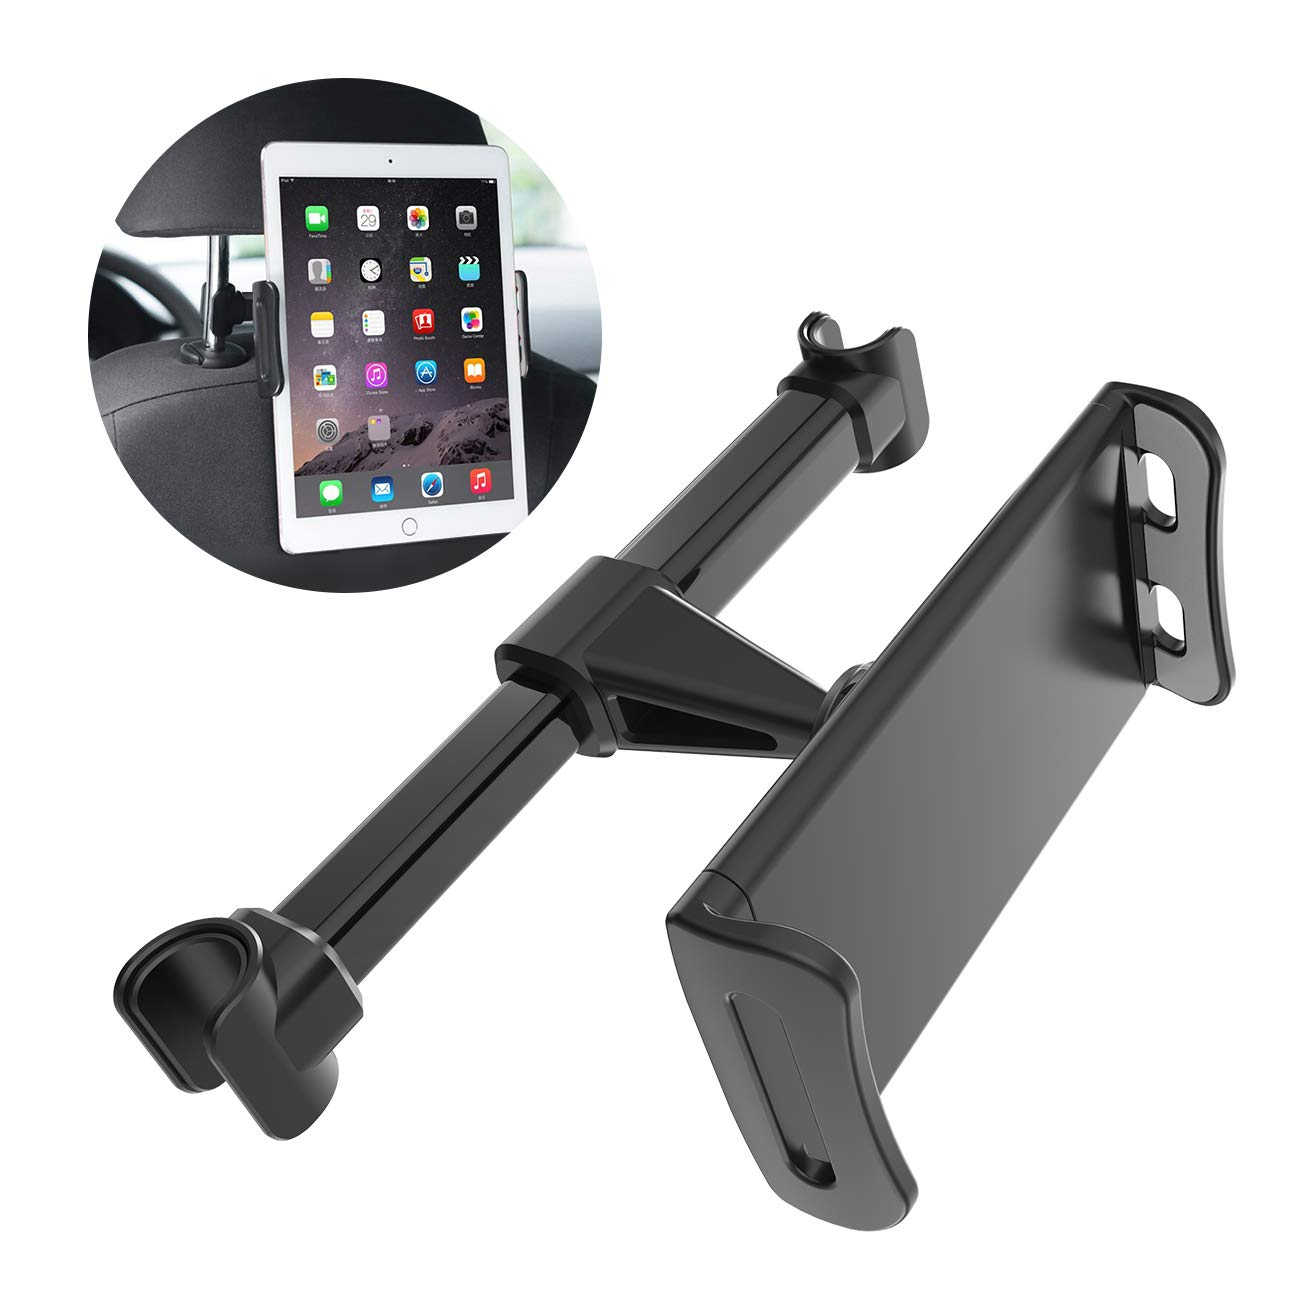 "Car Headrest Mount Seat Tablet Holder for iPad/Samsung Galaxy Tabs/Amazon Kindle Fire HD/Nintendo Switch/Other Devices 4""-11"""